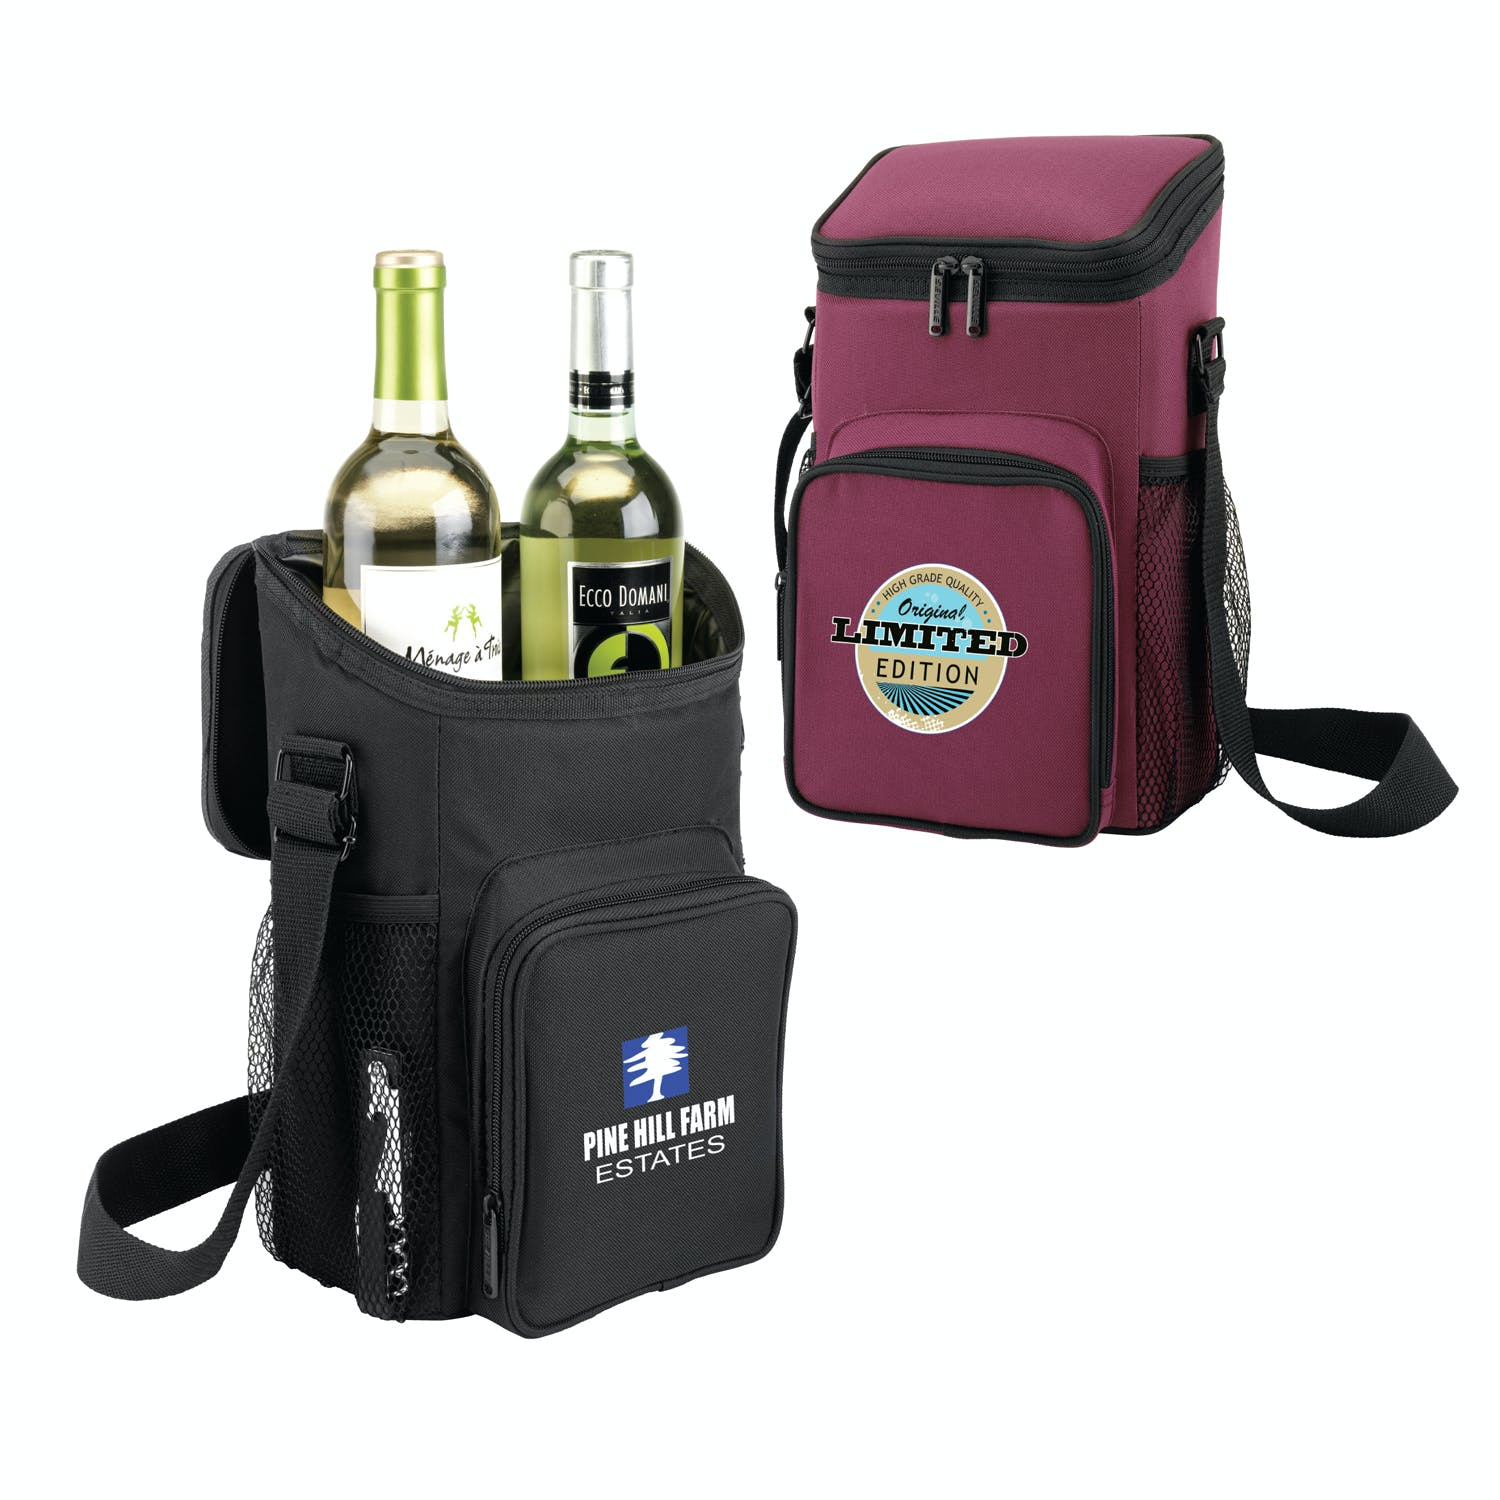 Wine Caddy (Item # WJJHU-IUEVV) Wine bag sold by InkEasy